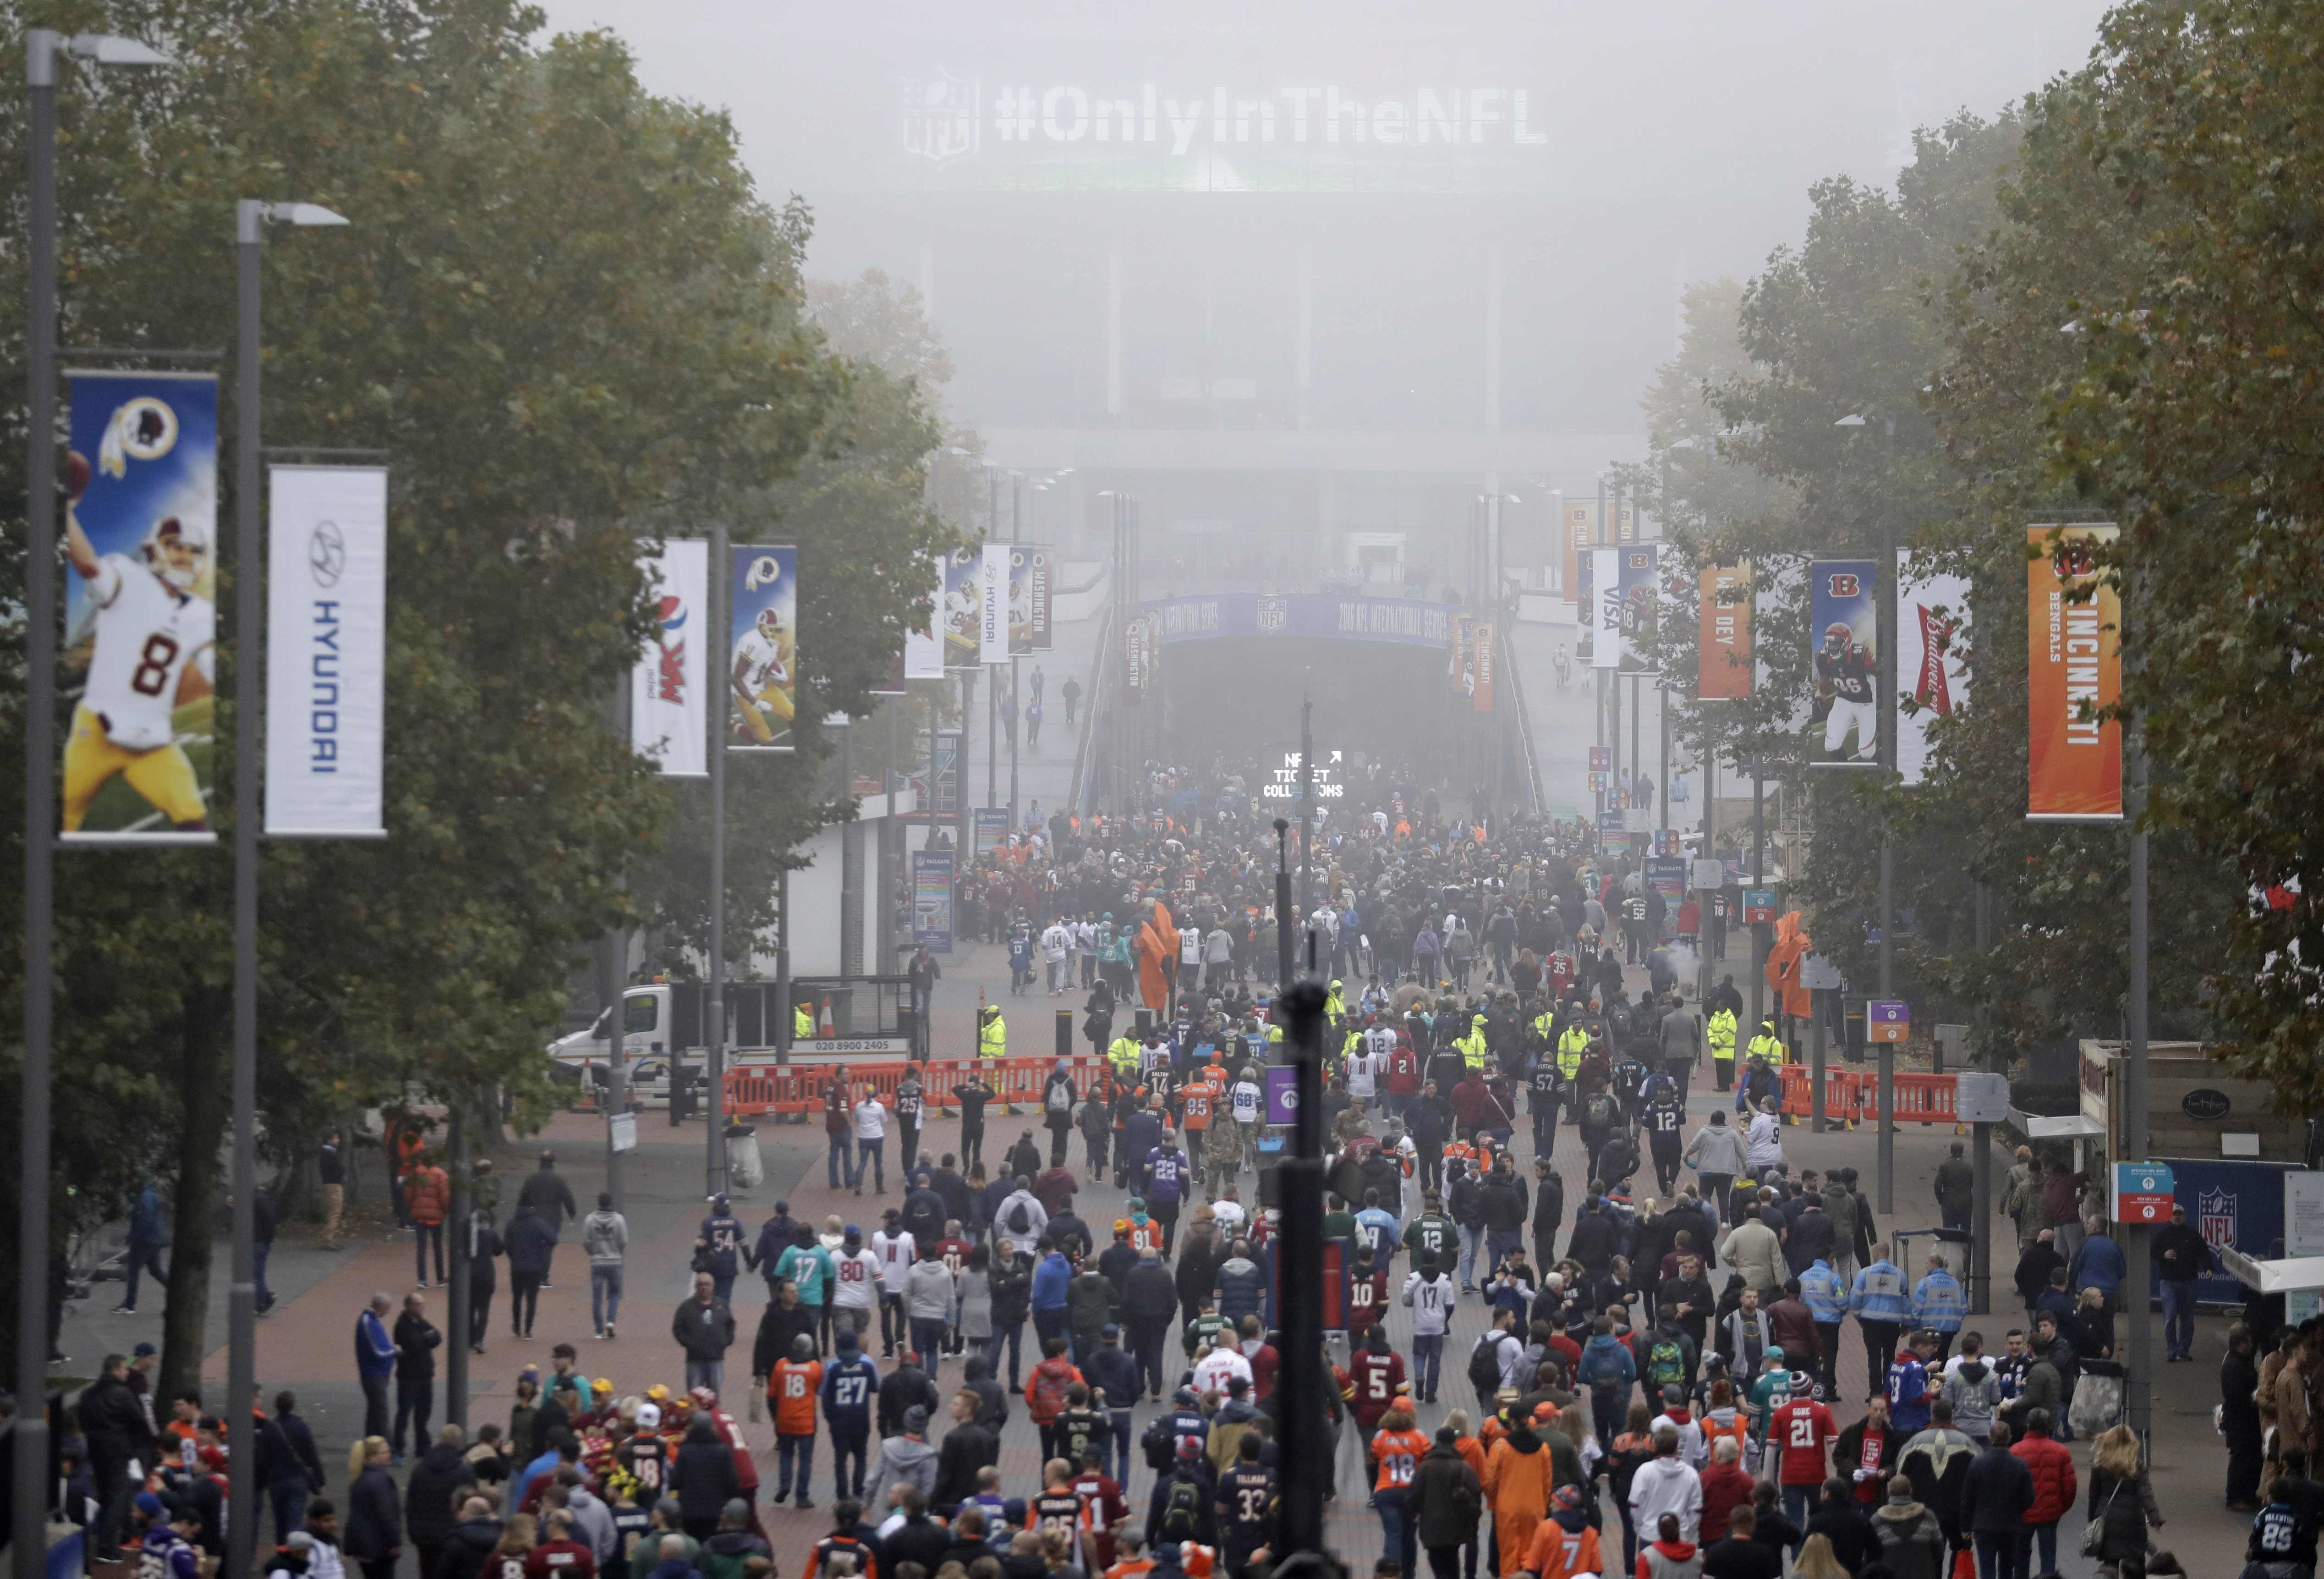 Fog shrouds Wembley Way as fans arrive for an NFL Football game between Washington Redskins and Cincinnati Bengals at Wembley Stadium in London, Sunday Oct. 30, 2016. (AP Photo/Matt Dunham)